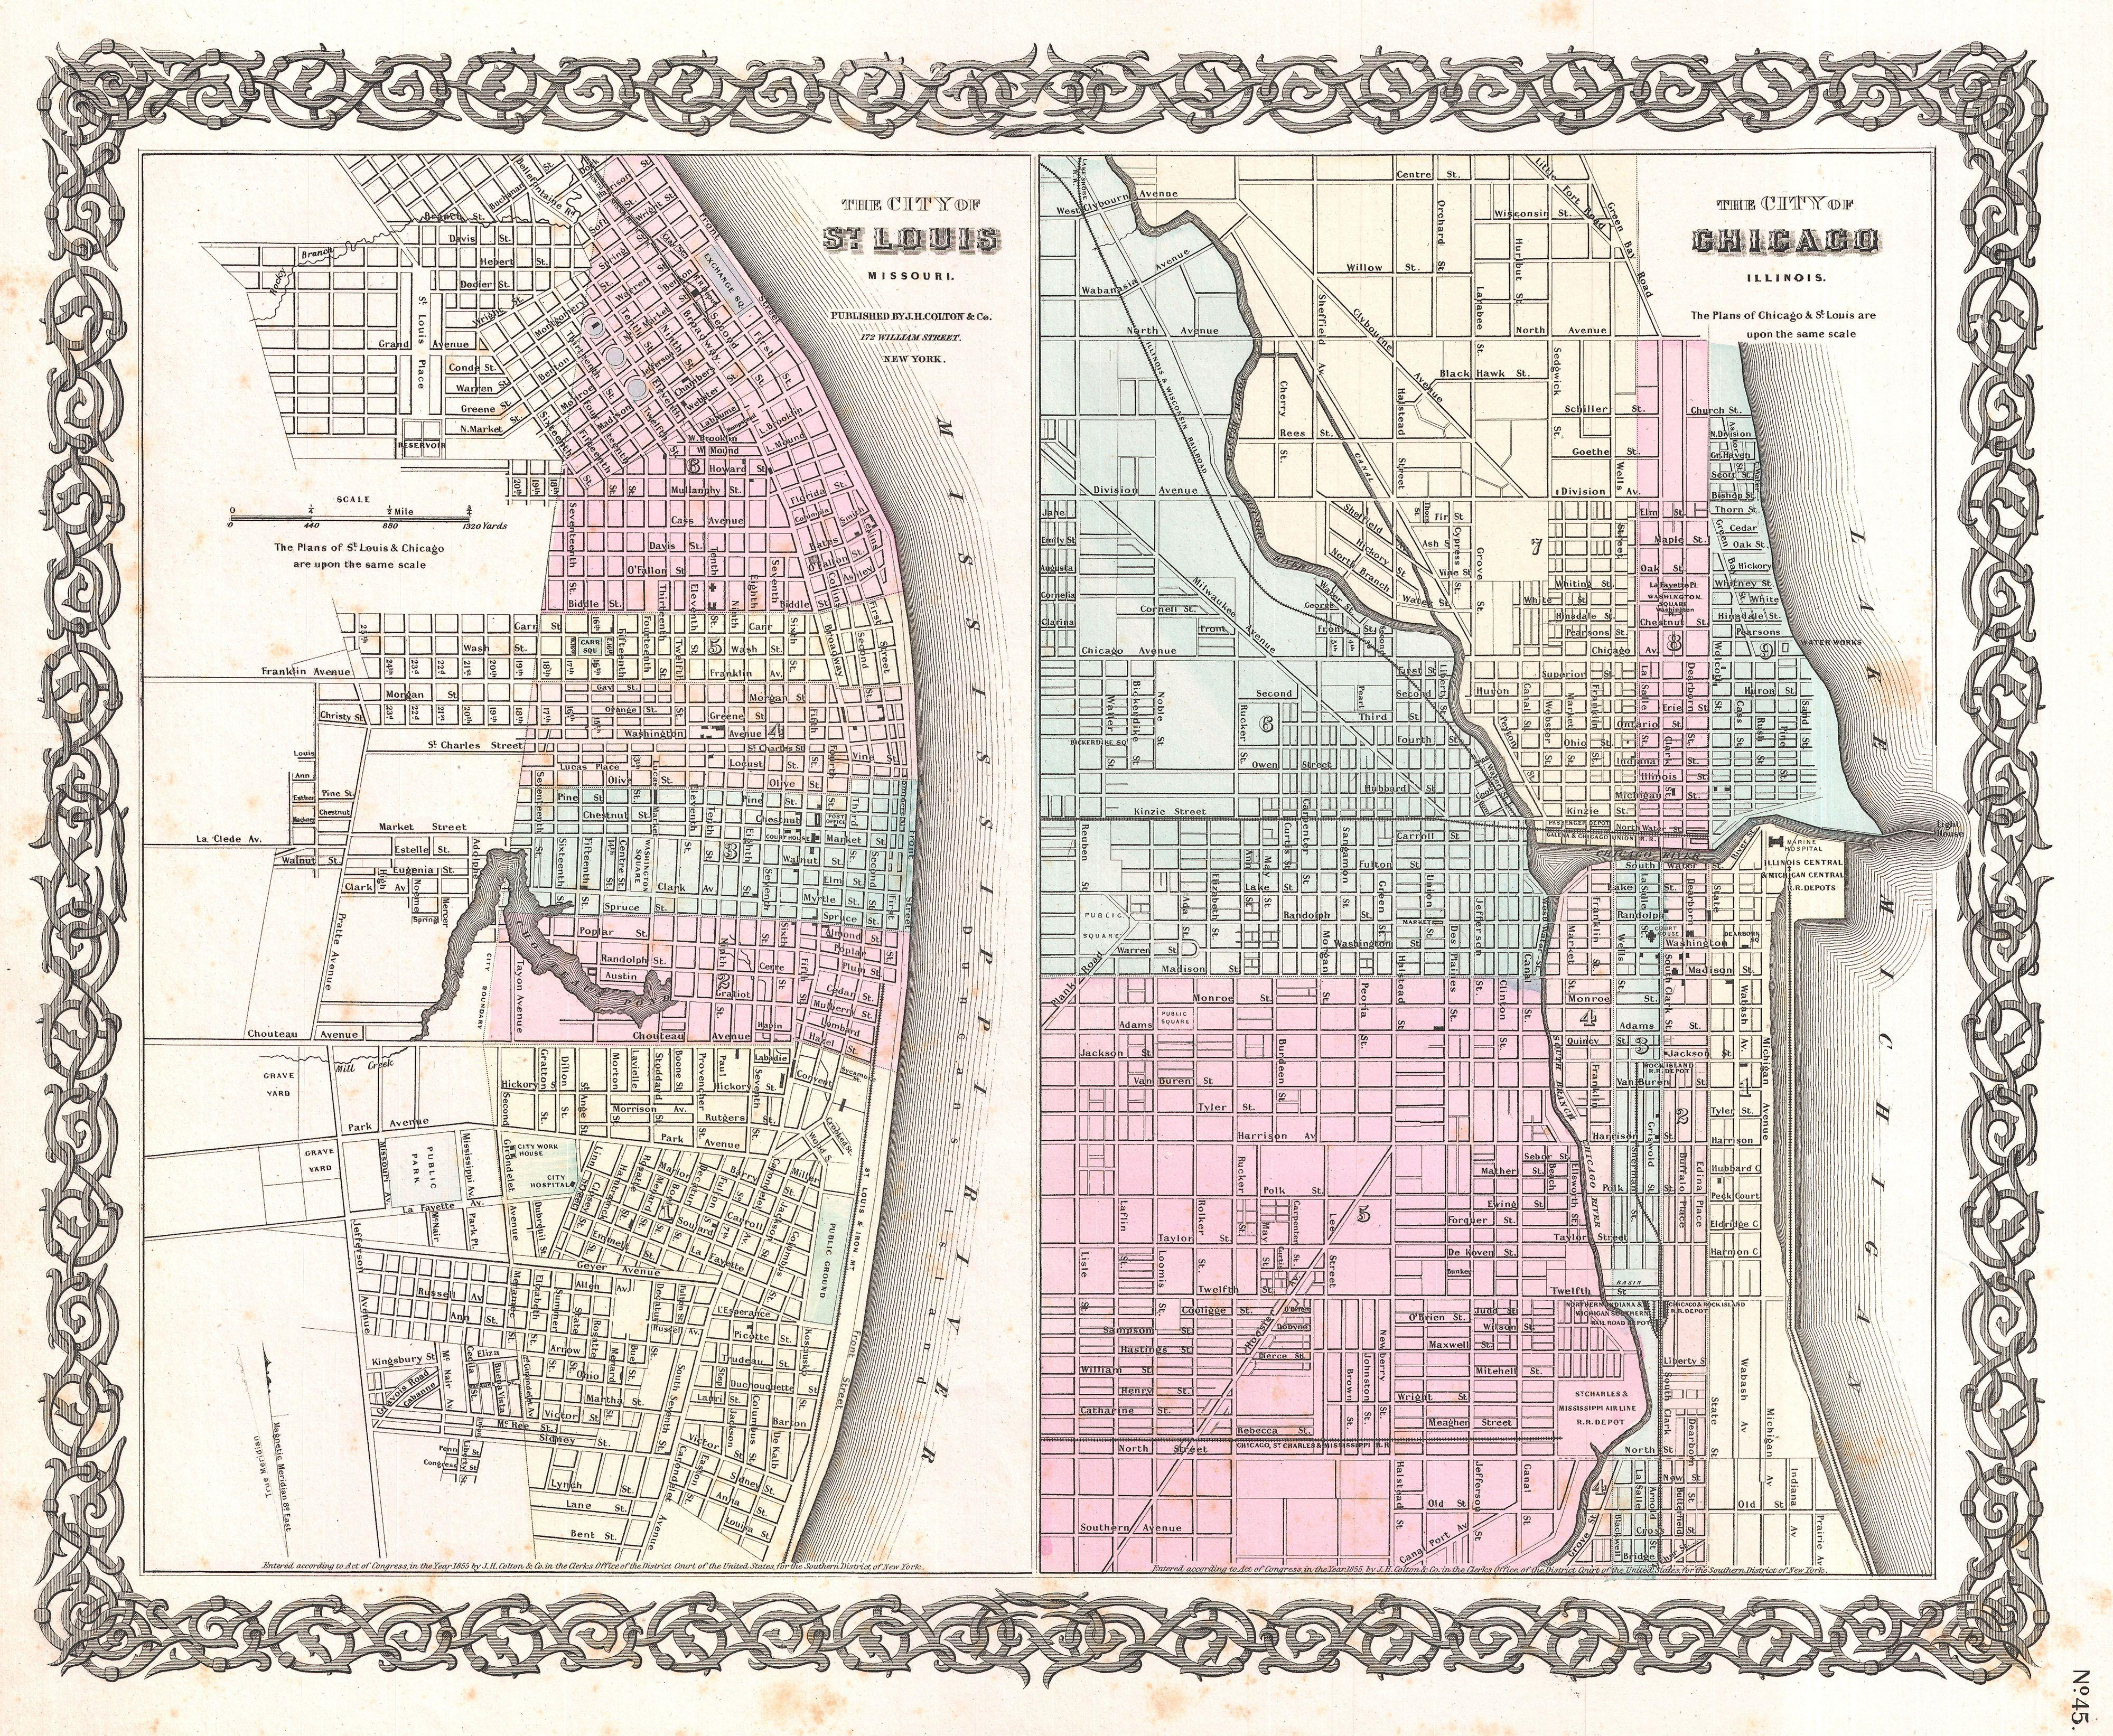 File:1855_Colton_Plan_or_Map_of_Chicago,_Illinois_and_St._Louis,_Missouri_ _Geographicus_ _StLouisChicago Colton 1855 on S Spiral Border Green